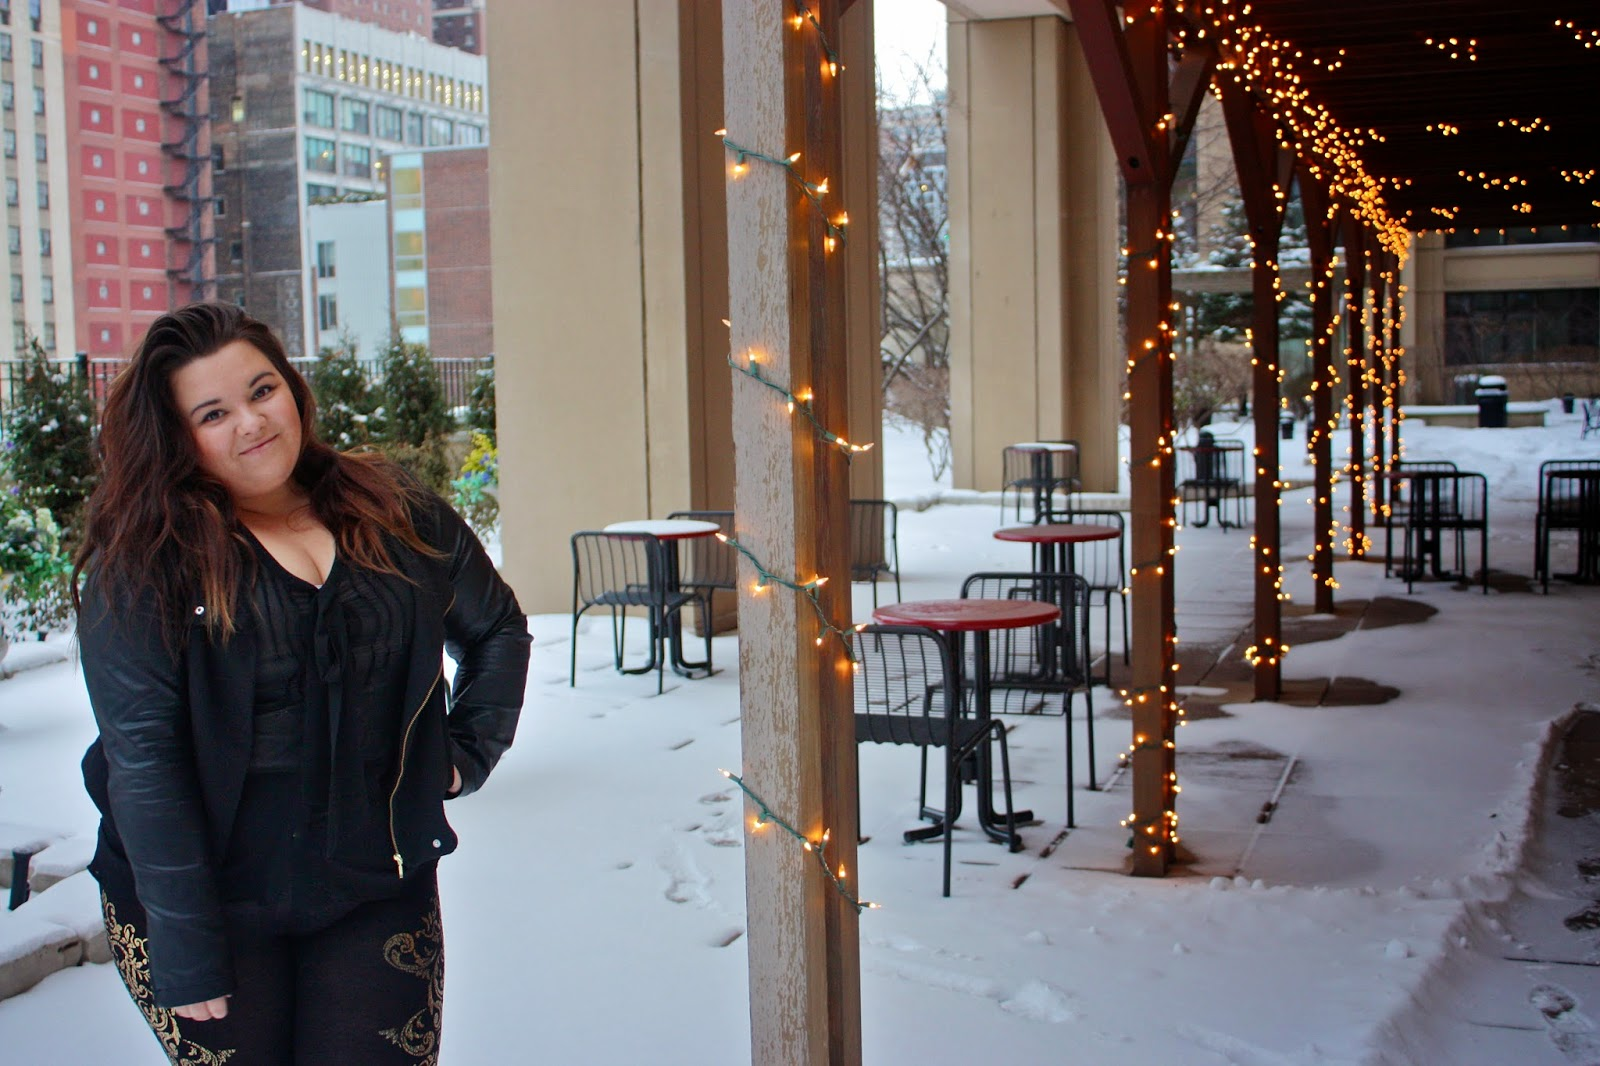 forever 21, forever 21 plus, plus size fashion, plus size fashion blogger, natalie craig, natalie in the city, chicago fashion, winter fashion, beyonce, beyonce gold, gold leggings, leather, contrast sleeves, bow tie blouse, chiffon, ombre, curly hair, thick girls, curvy girls, curvy fashion